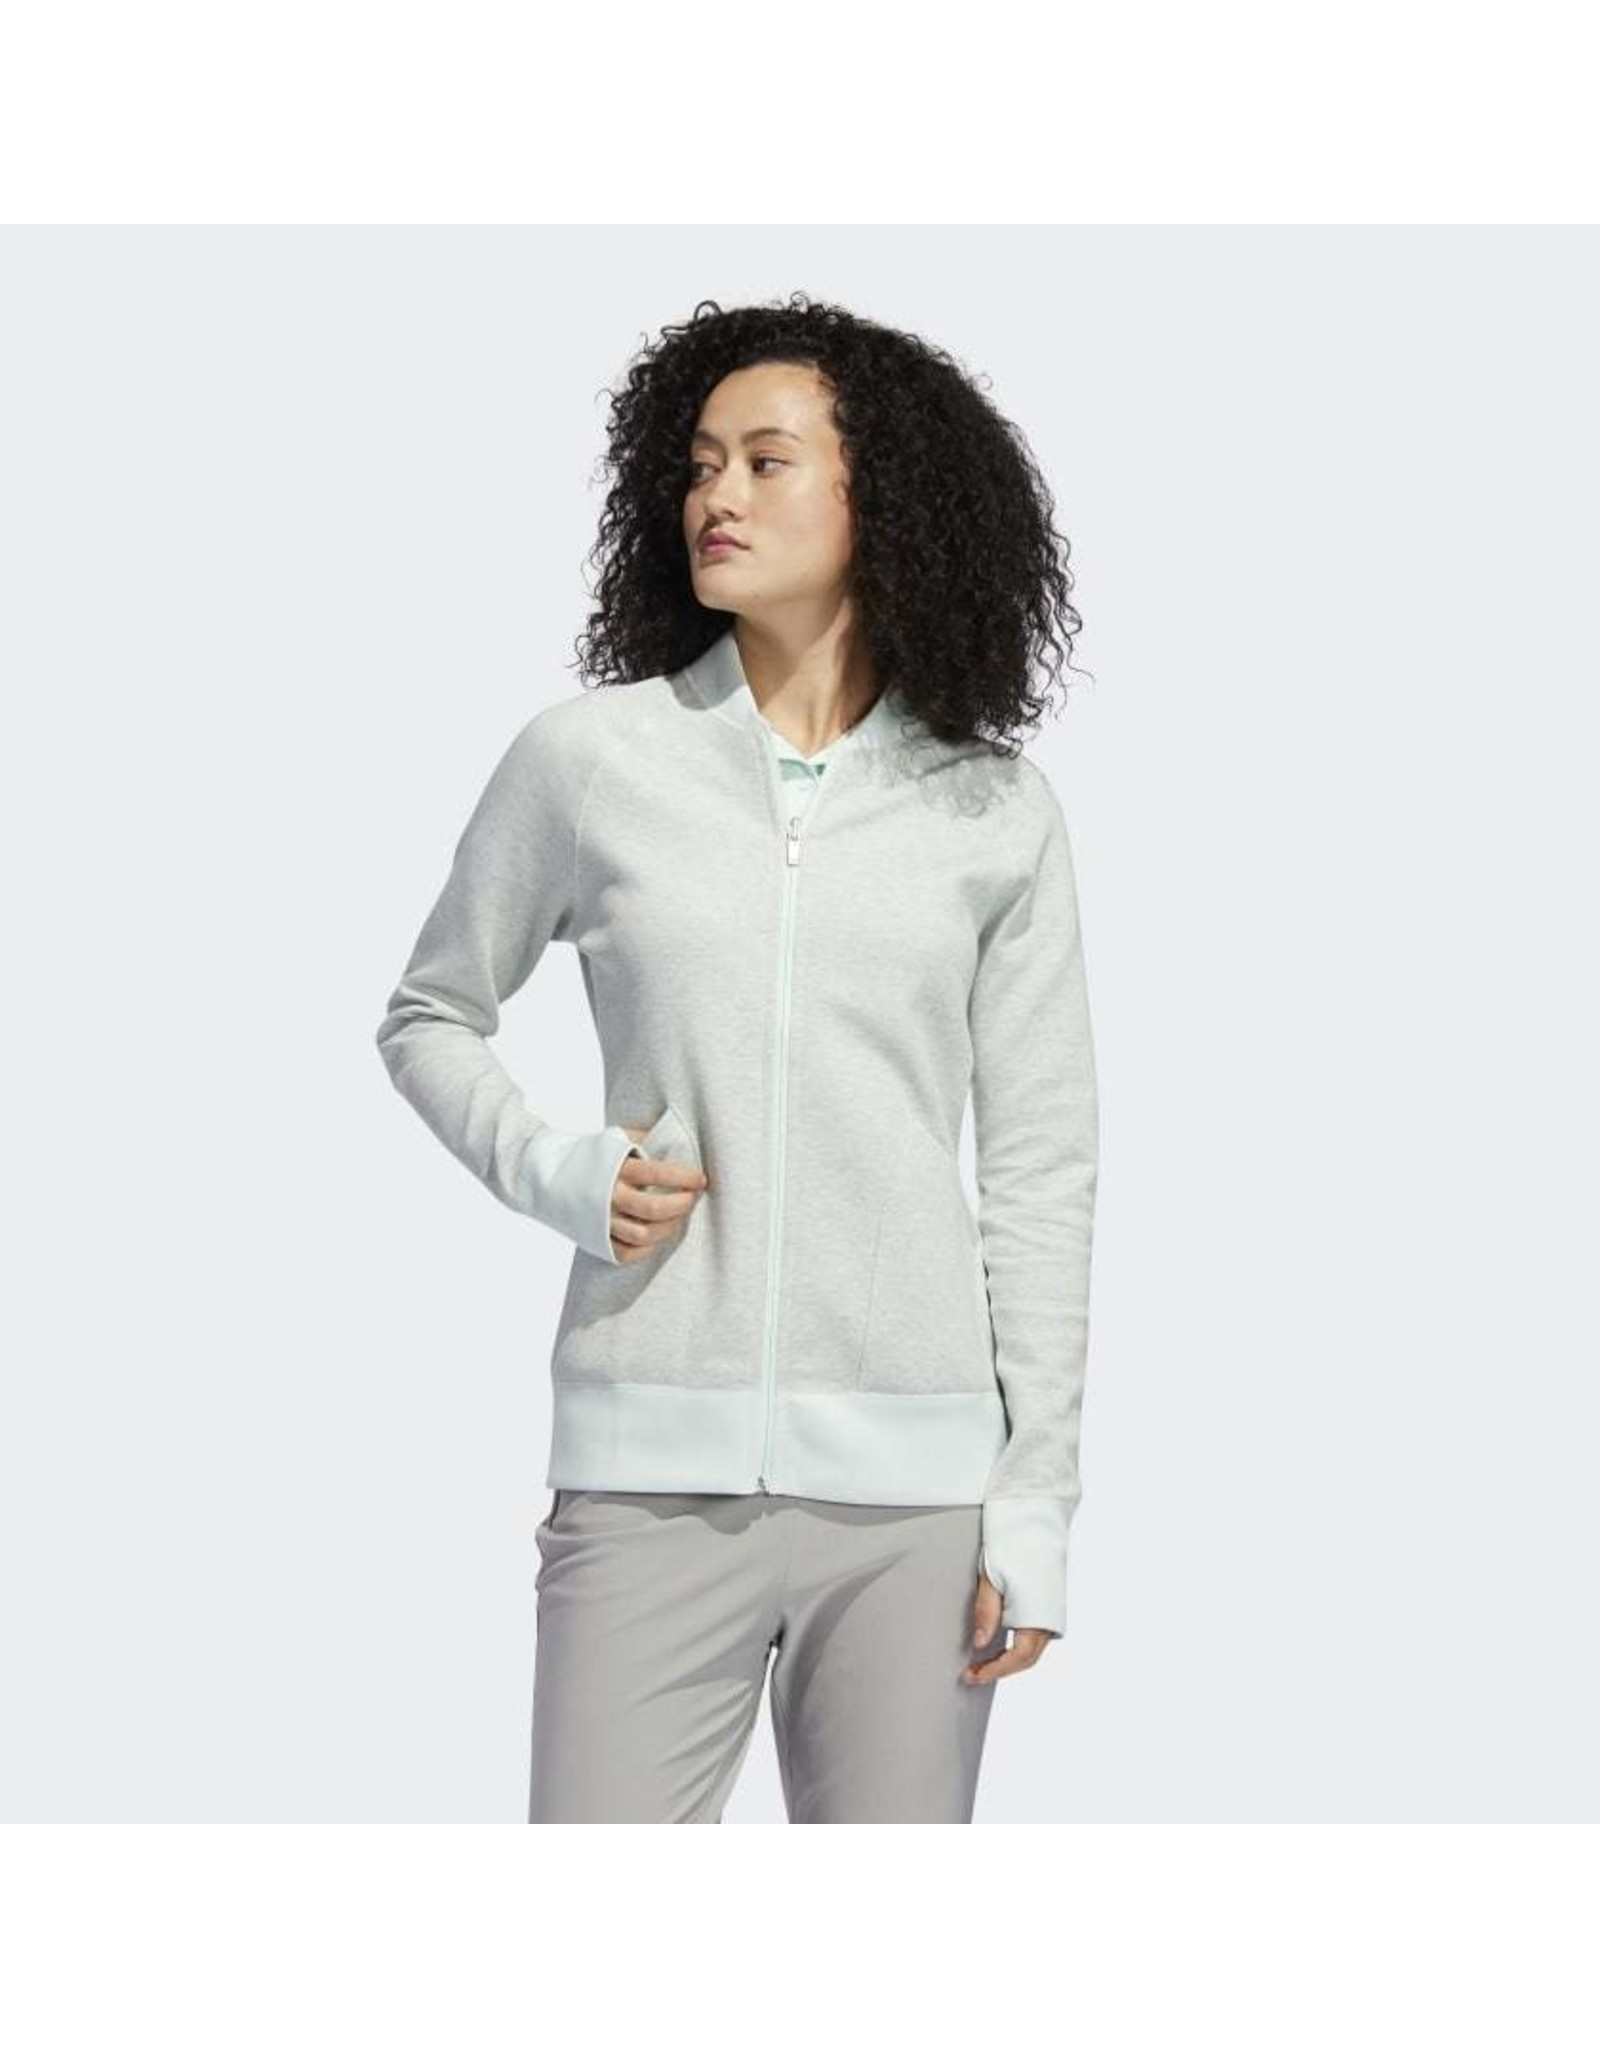 Adidas Jacket Ladies Adi RVSBL